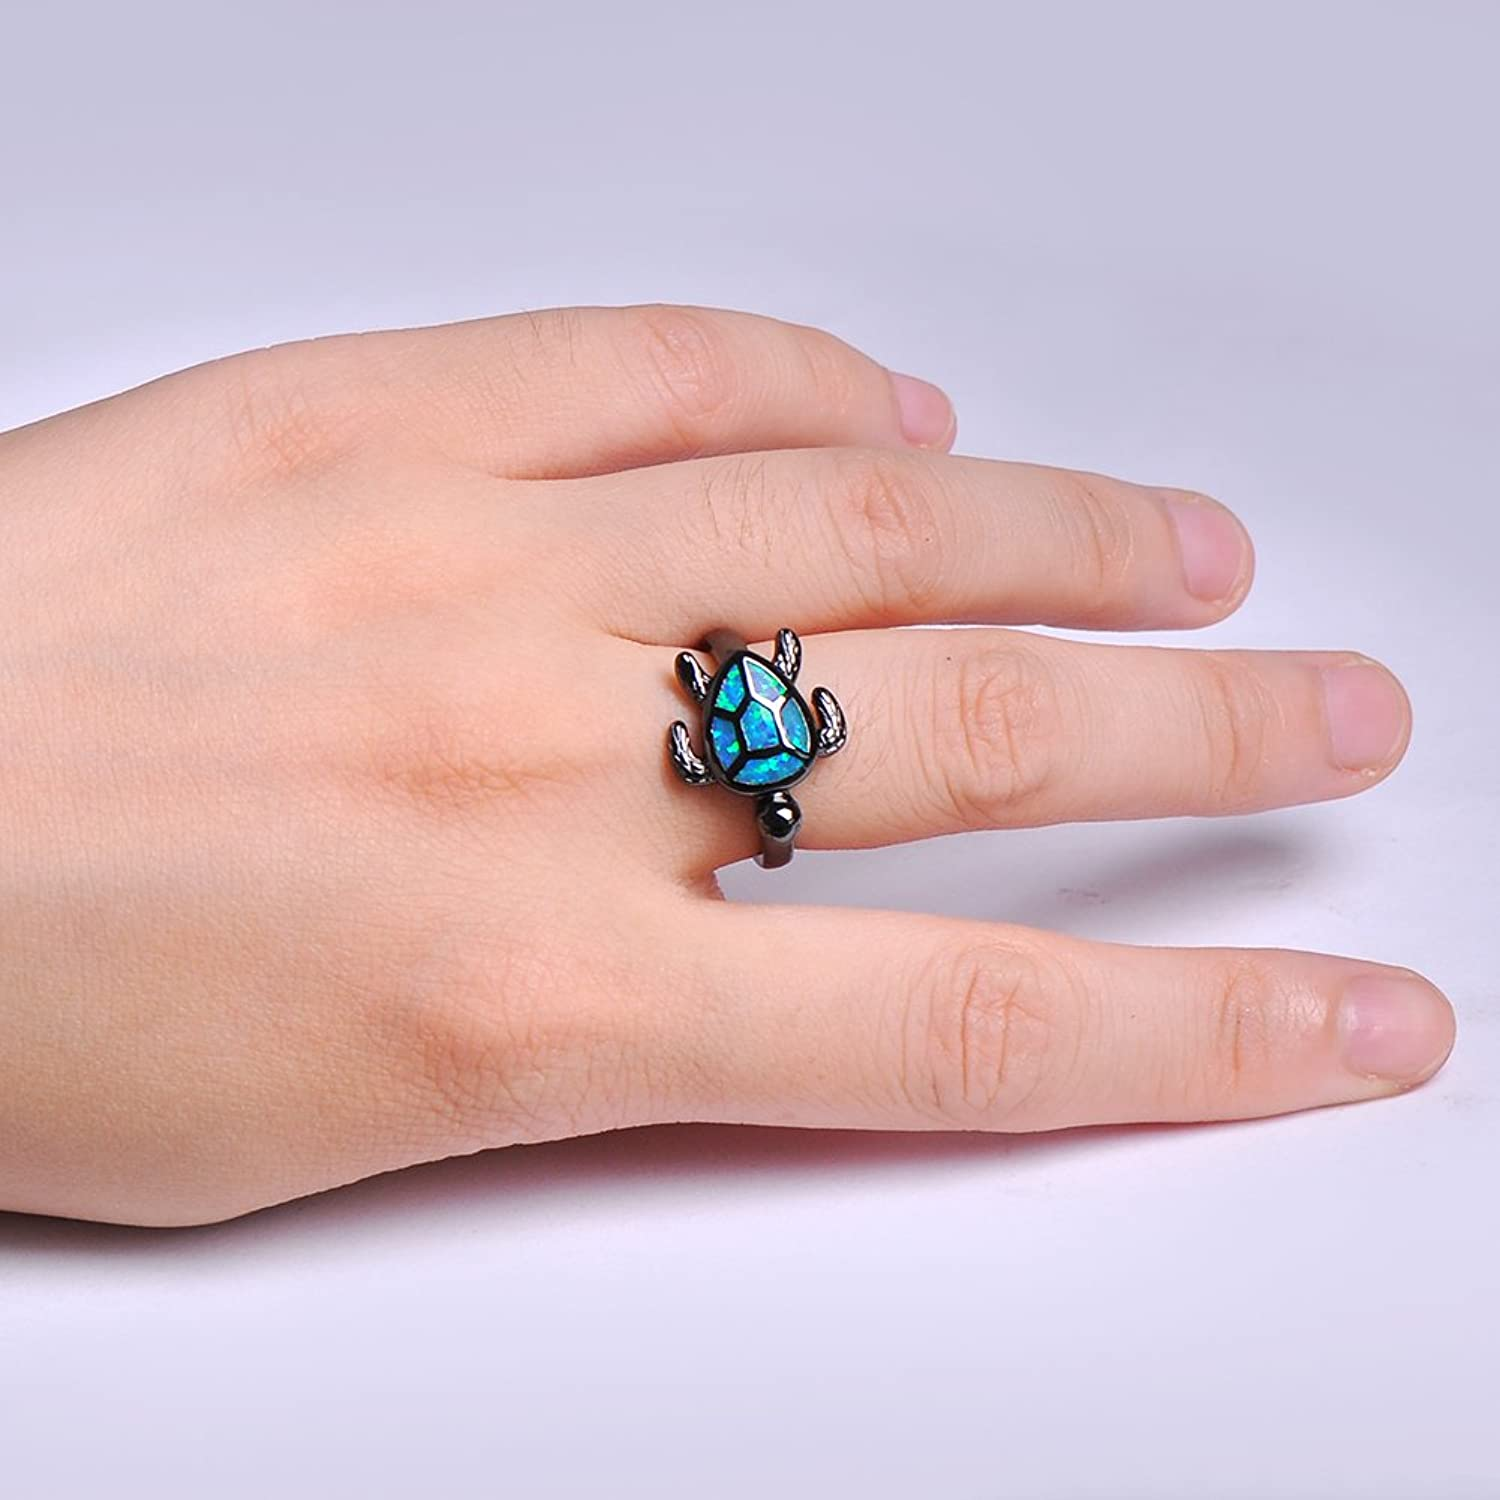 Amazon.com: Bamos Fashion Jewelry Girls Turtle Best Friend Rings for ...